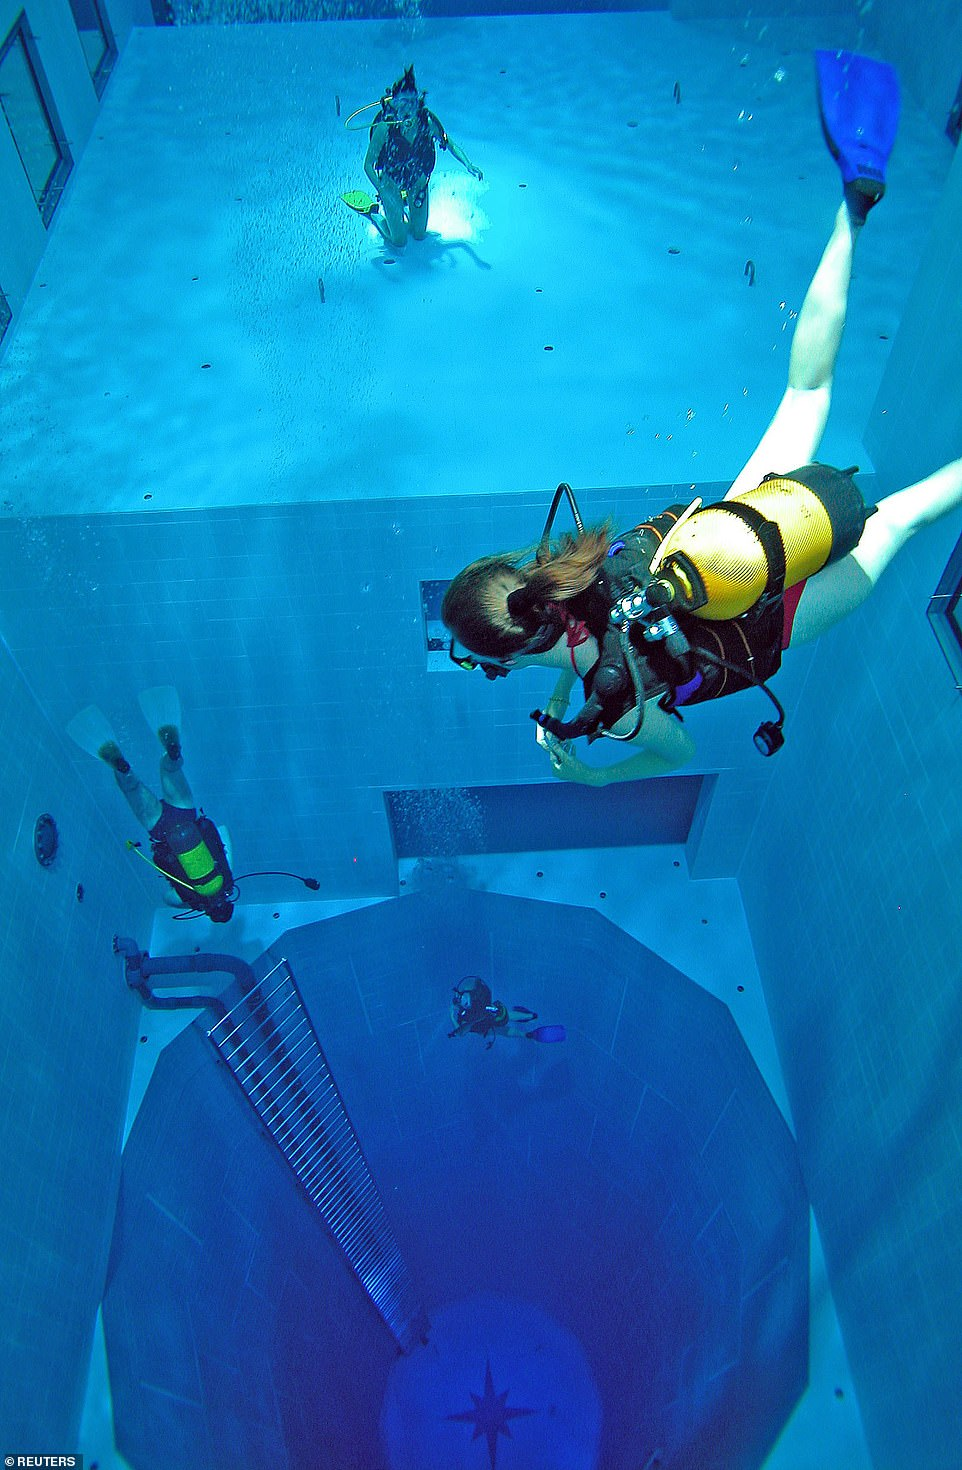 10707350-6782909-a_diver_swims_into_the_pool_at_nemo33_diving_centre_in_brussels_-a-16_1551978508222